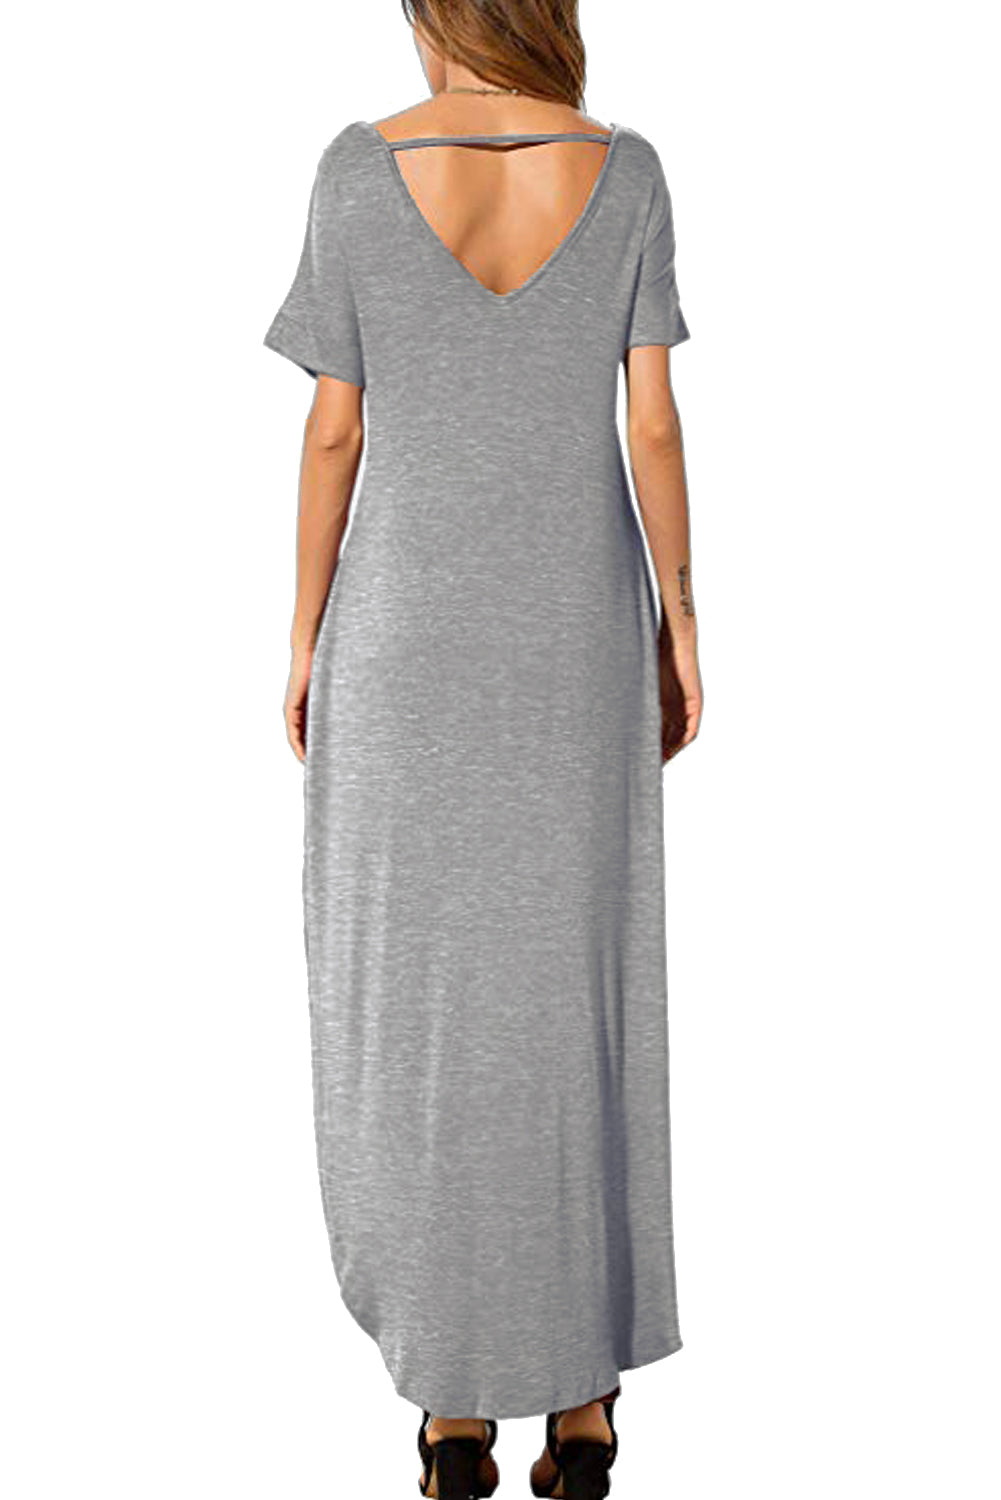 Gray Lace Front Pocket Short Sleeve Split Casual Loose Maxi Dress